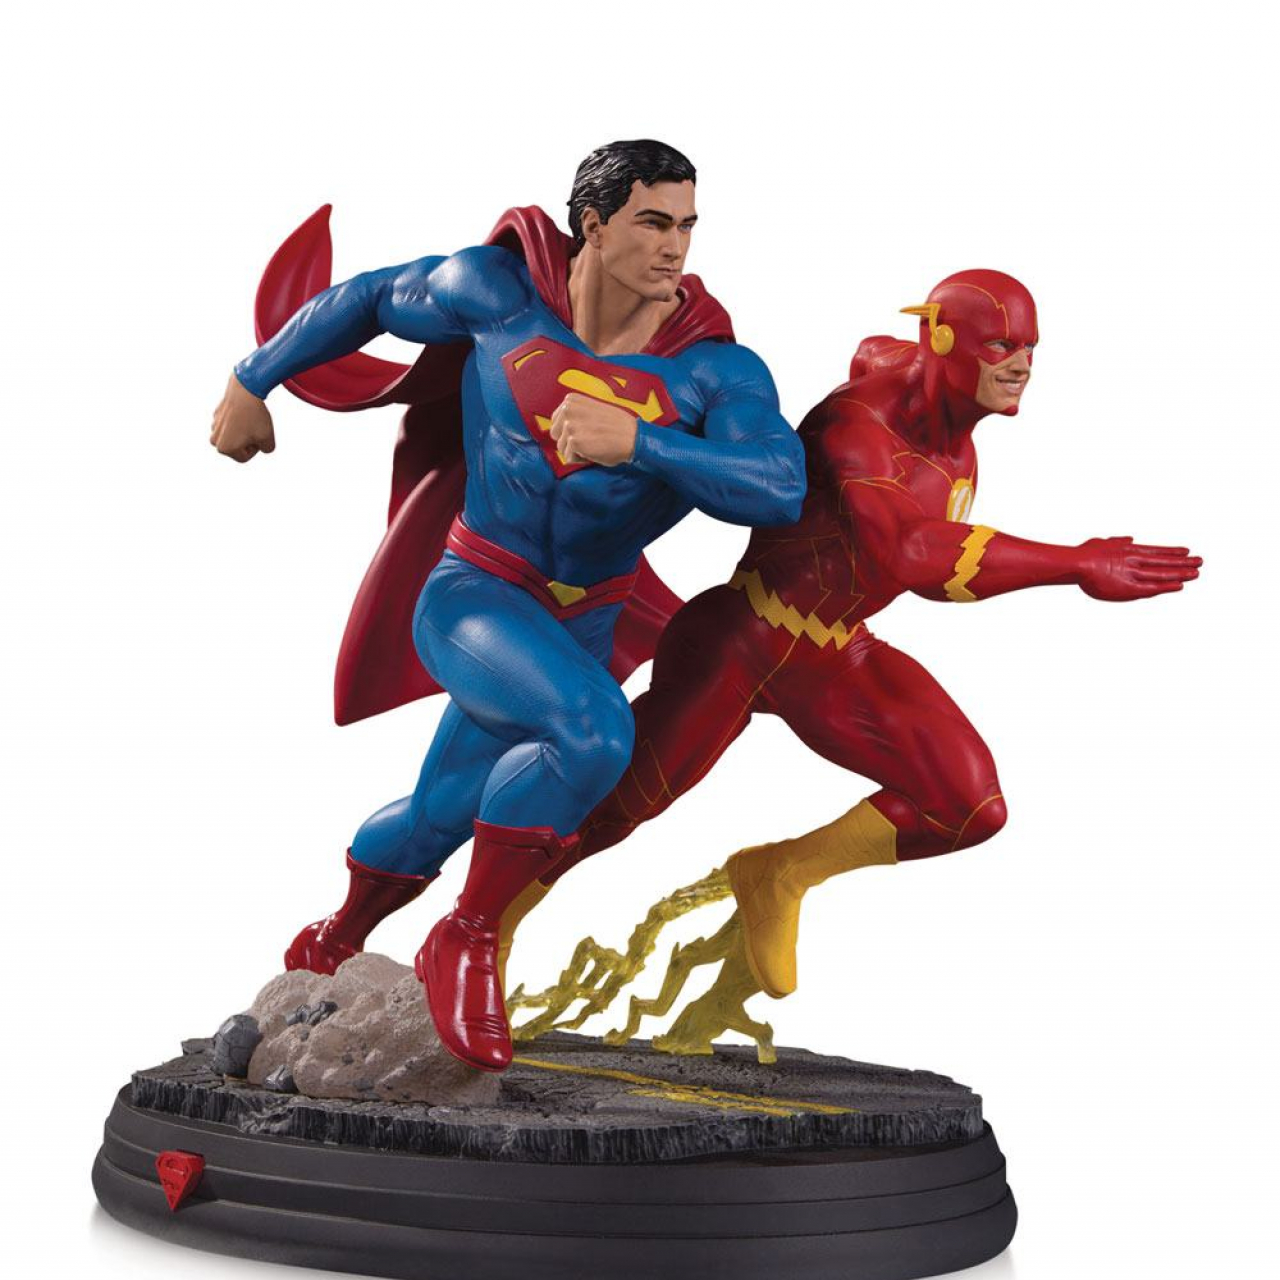 DC Gallery Statue Superman vs The Flash Racing 2nd Edition 26 cm